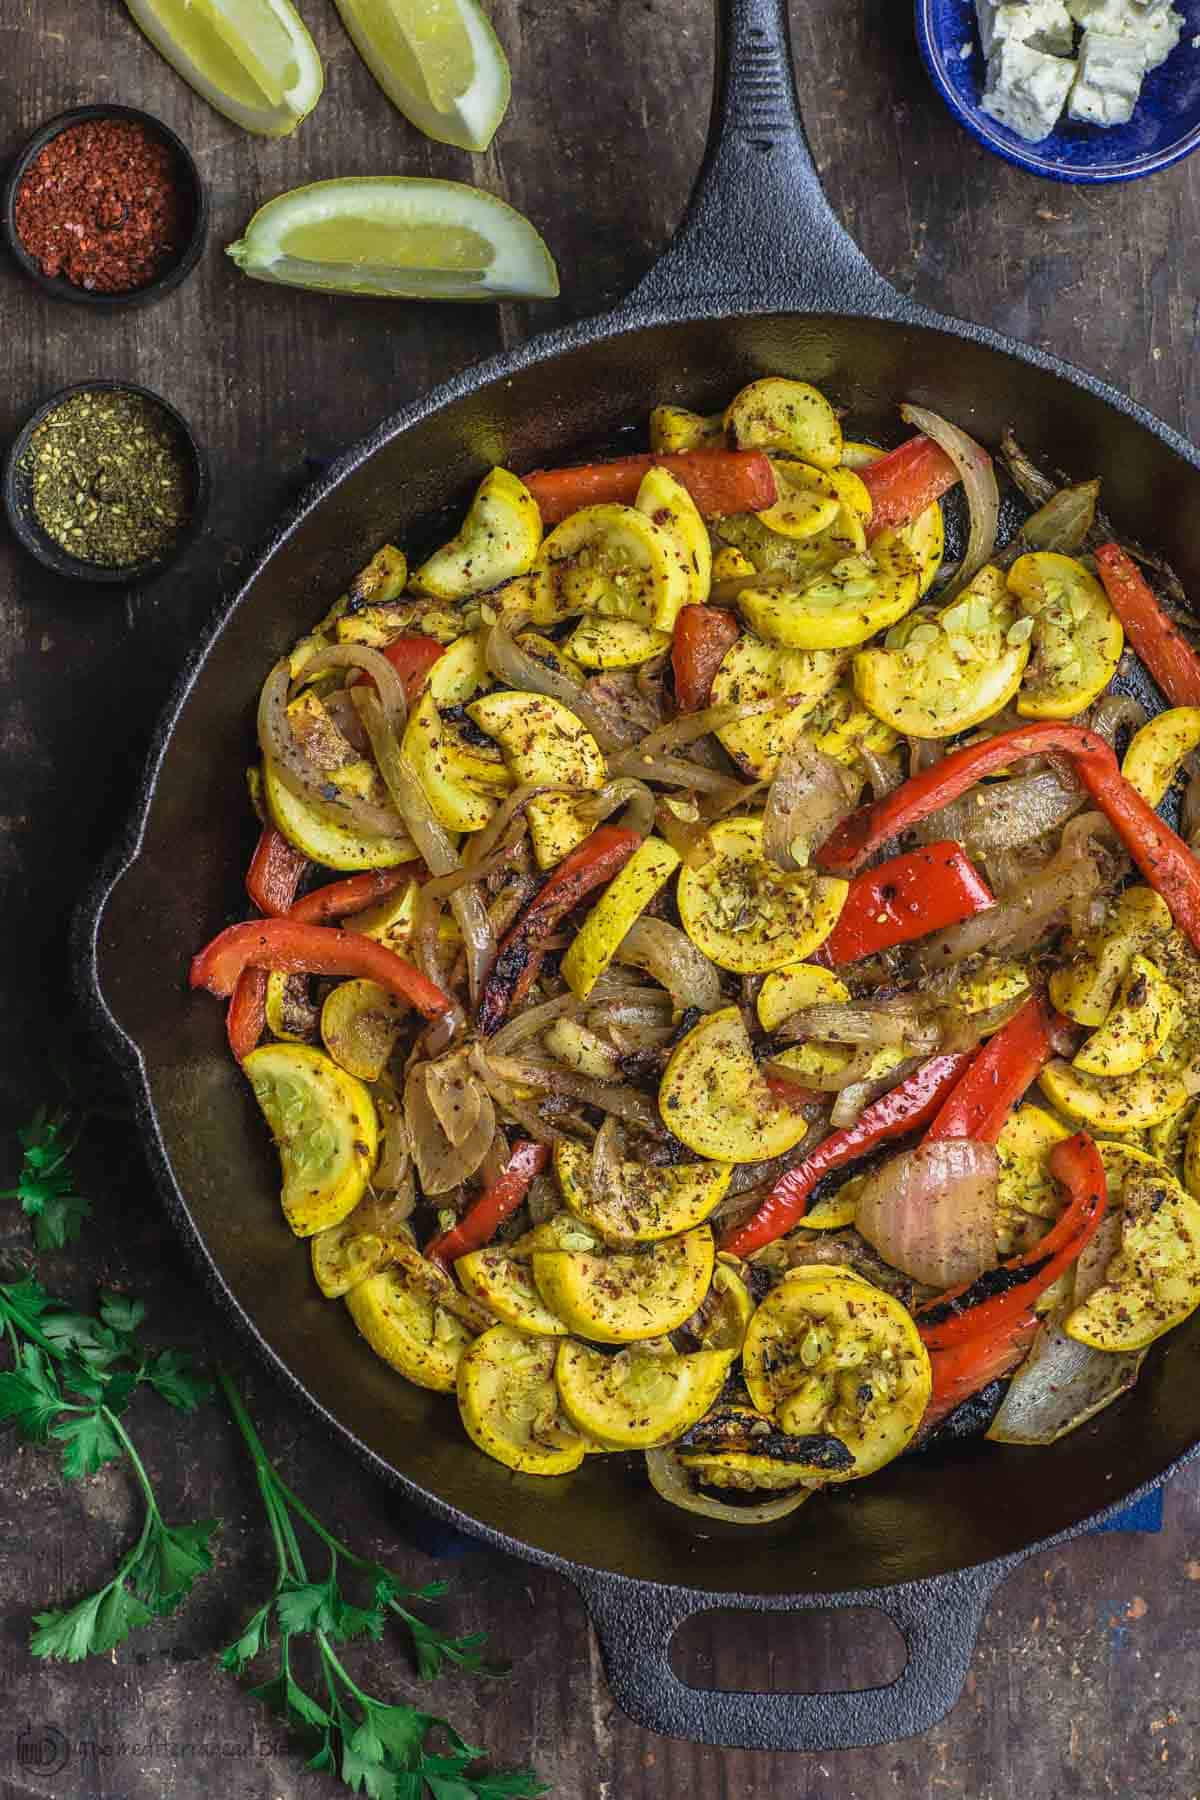 Mediterranean Sauteed Yellow Squash with Sweet Onions, Bell Peppers and Garlic in Cast Iron Skillet